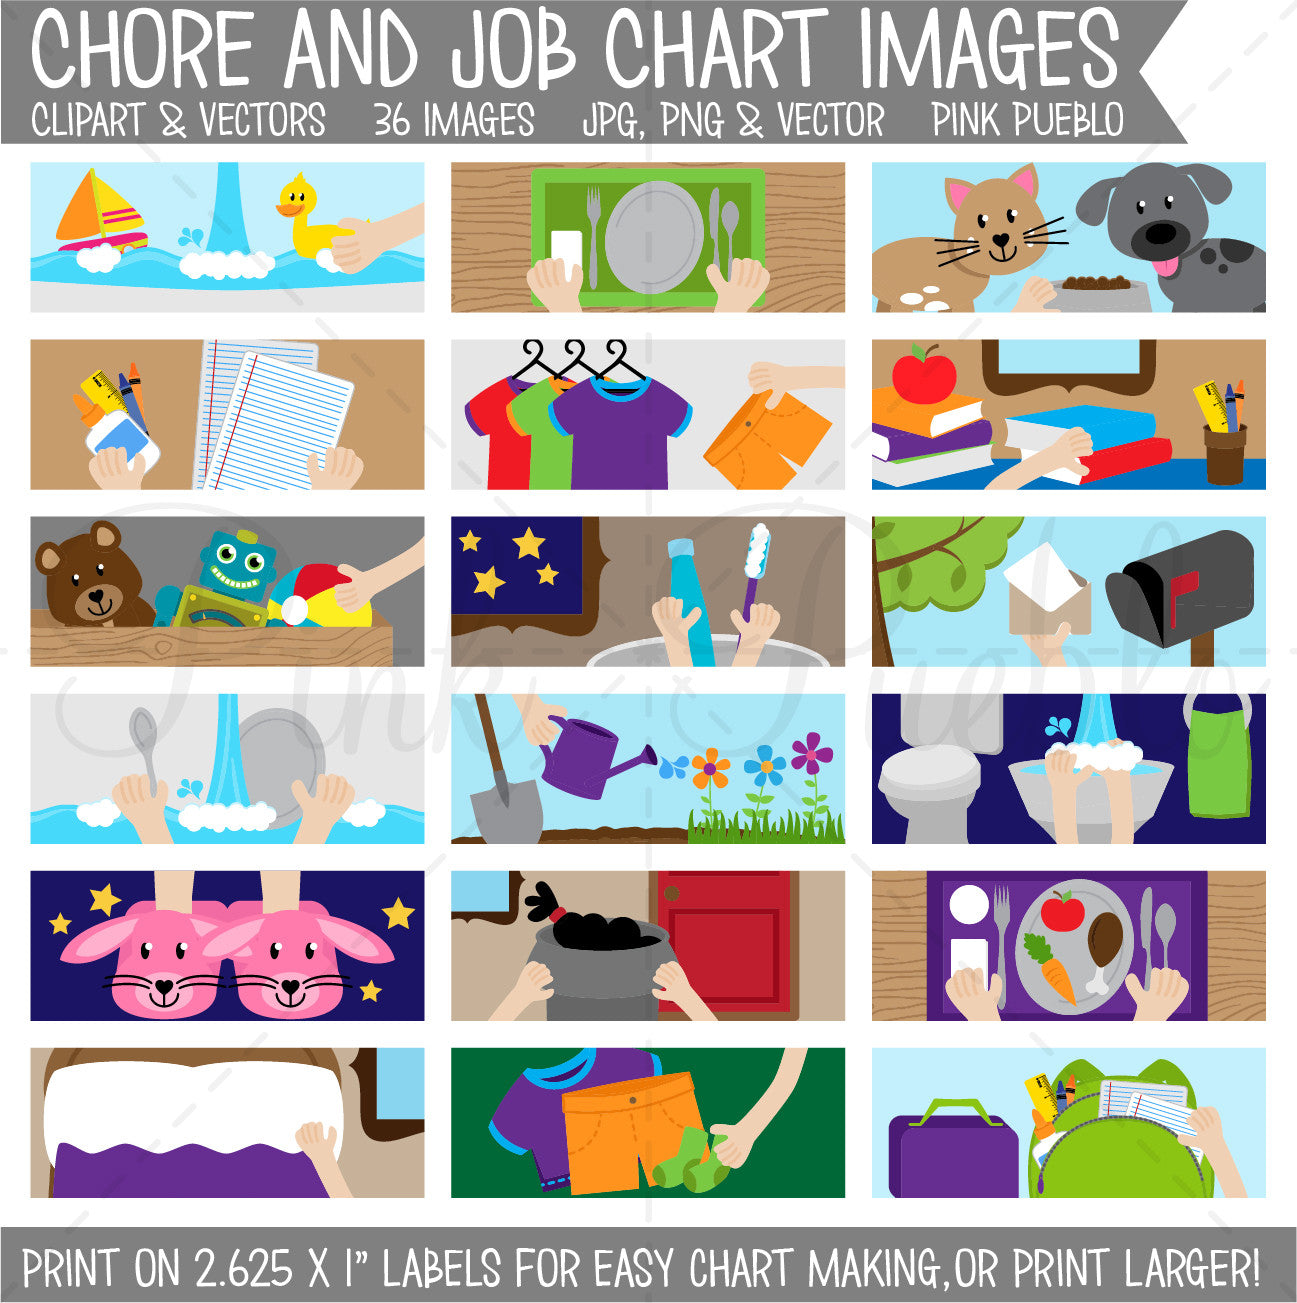 chore chart clipart, printable chore chart for kids - commercial and